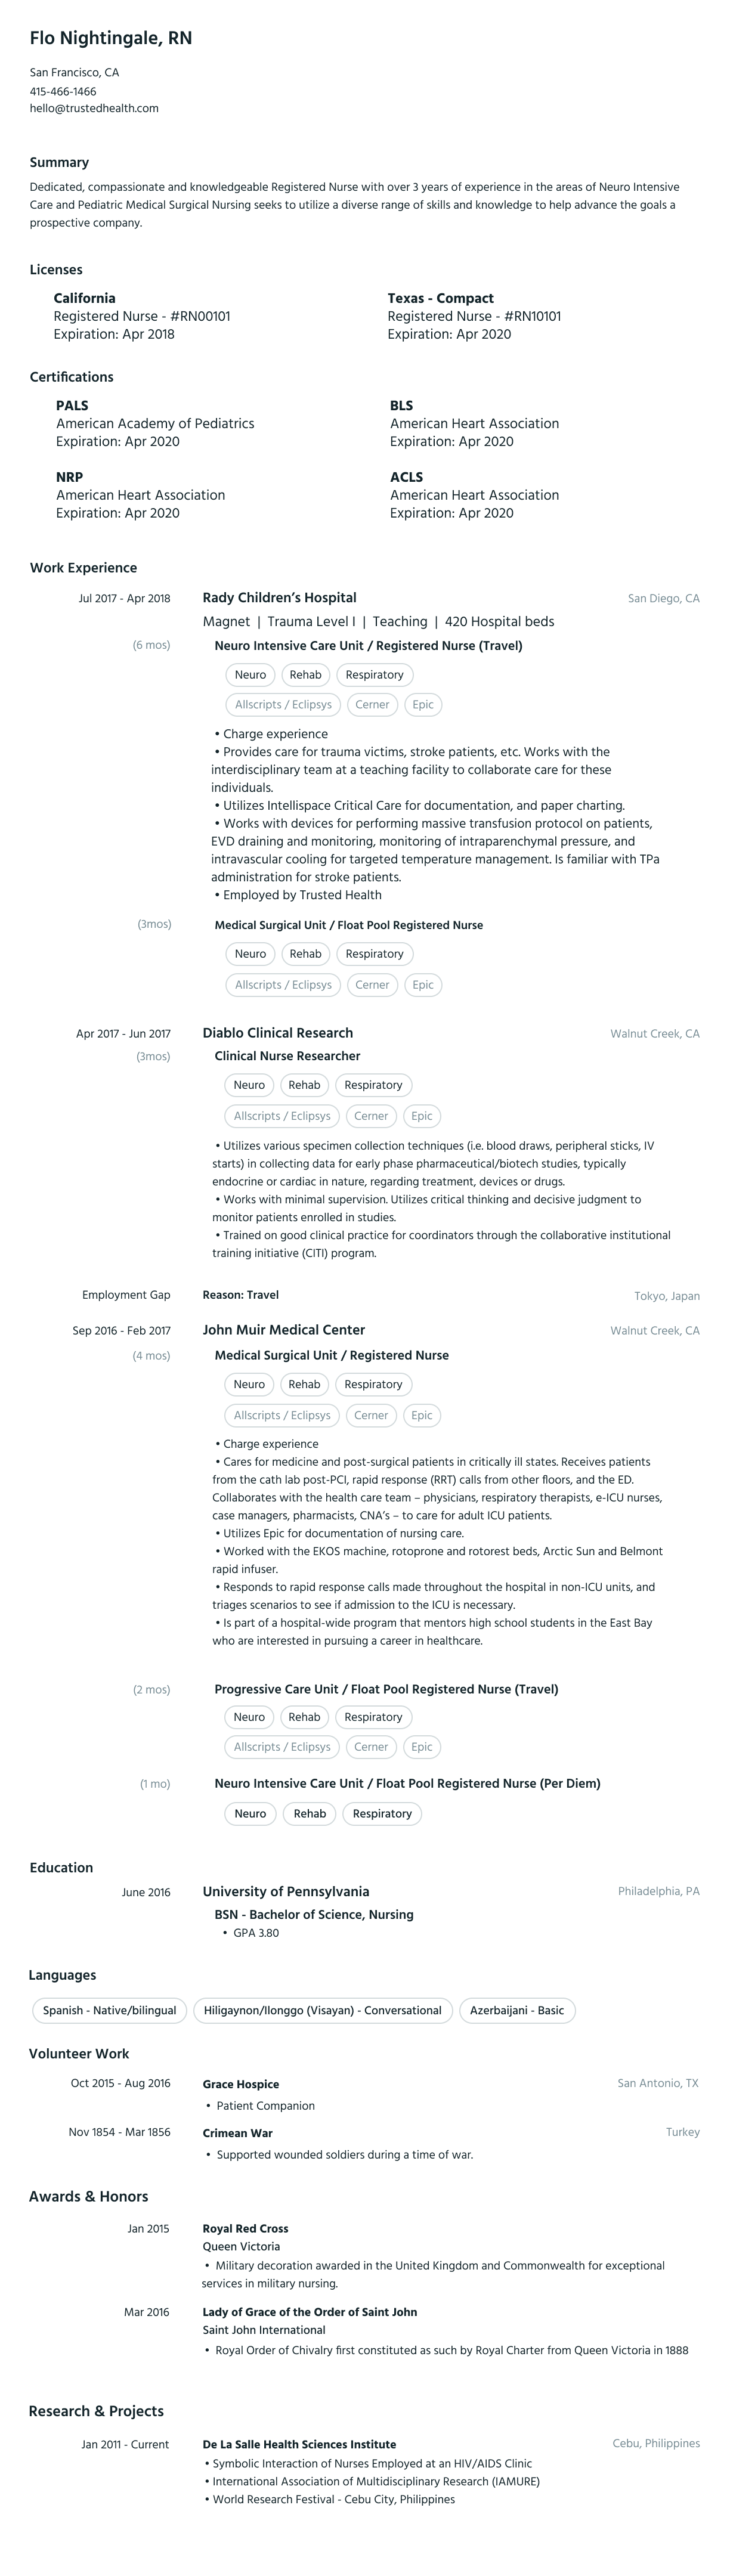 travel nurse resume example